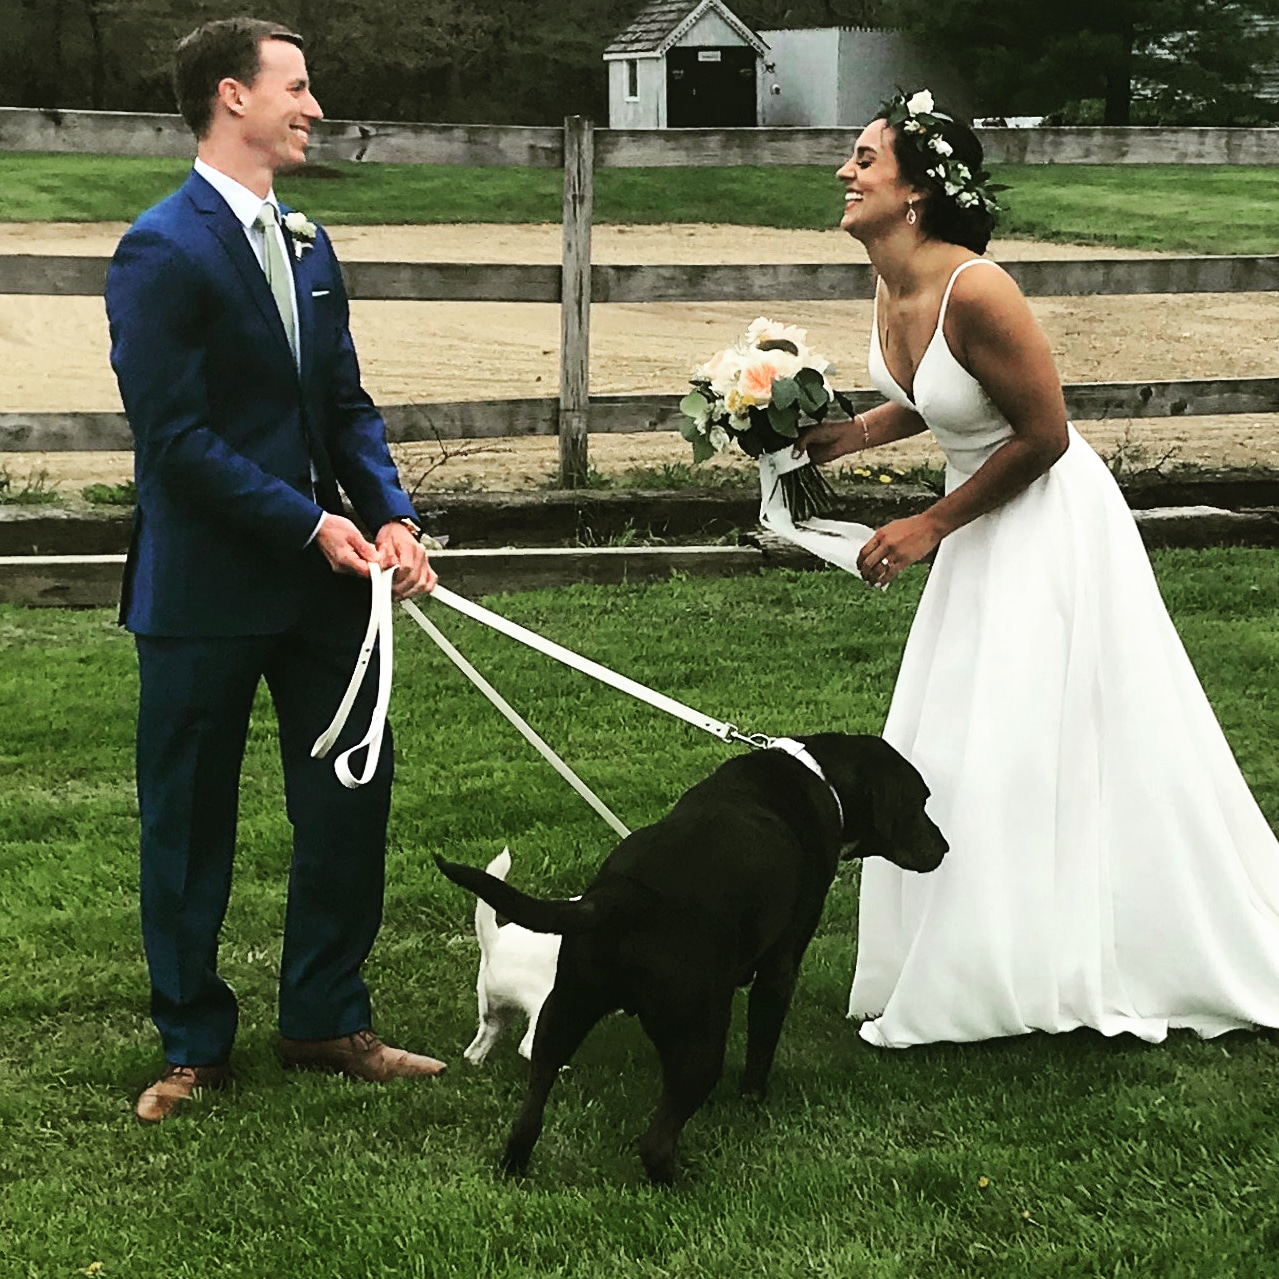 Bride and groom with dogs.jpg